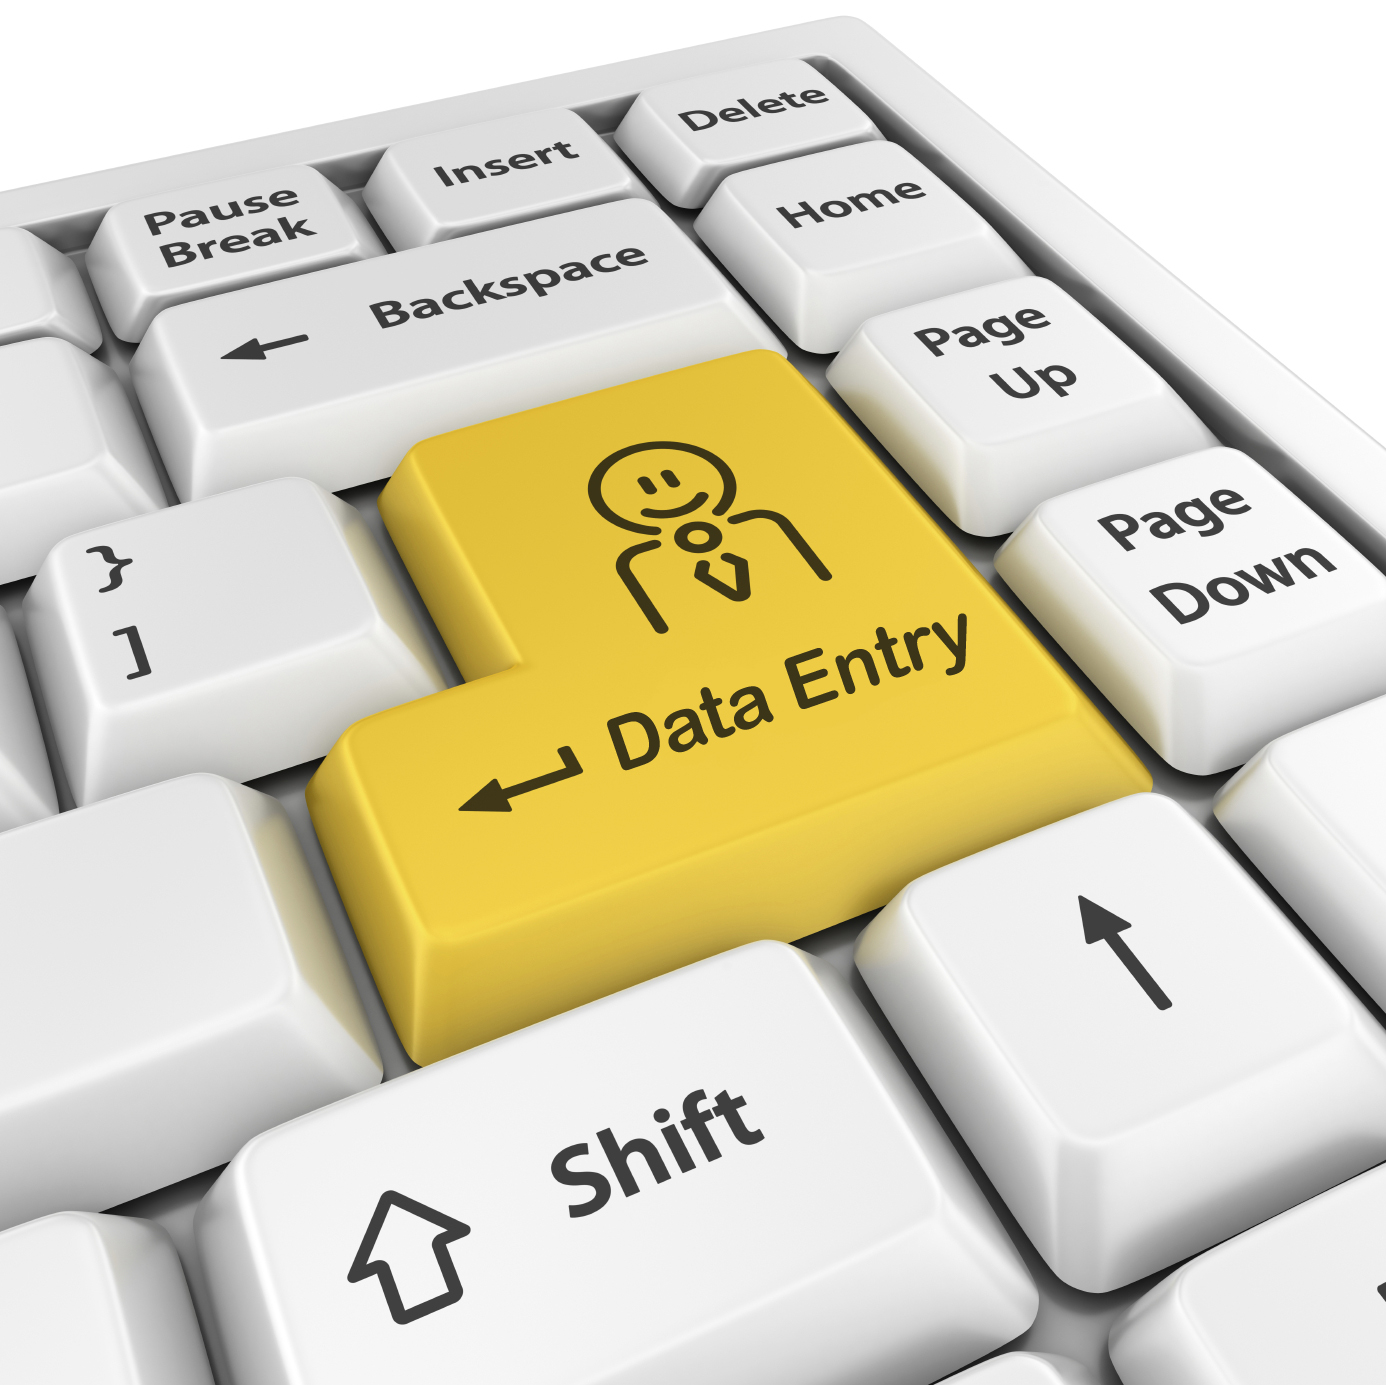 Do Any kind of data entry work for 3 Hour